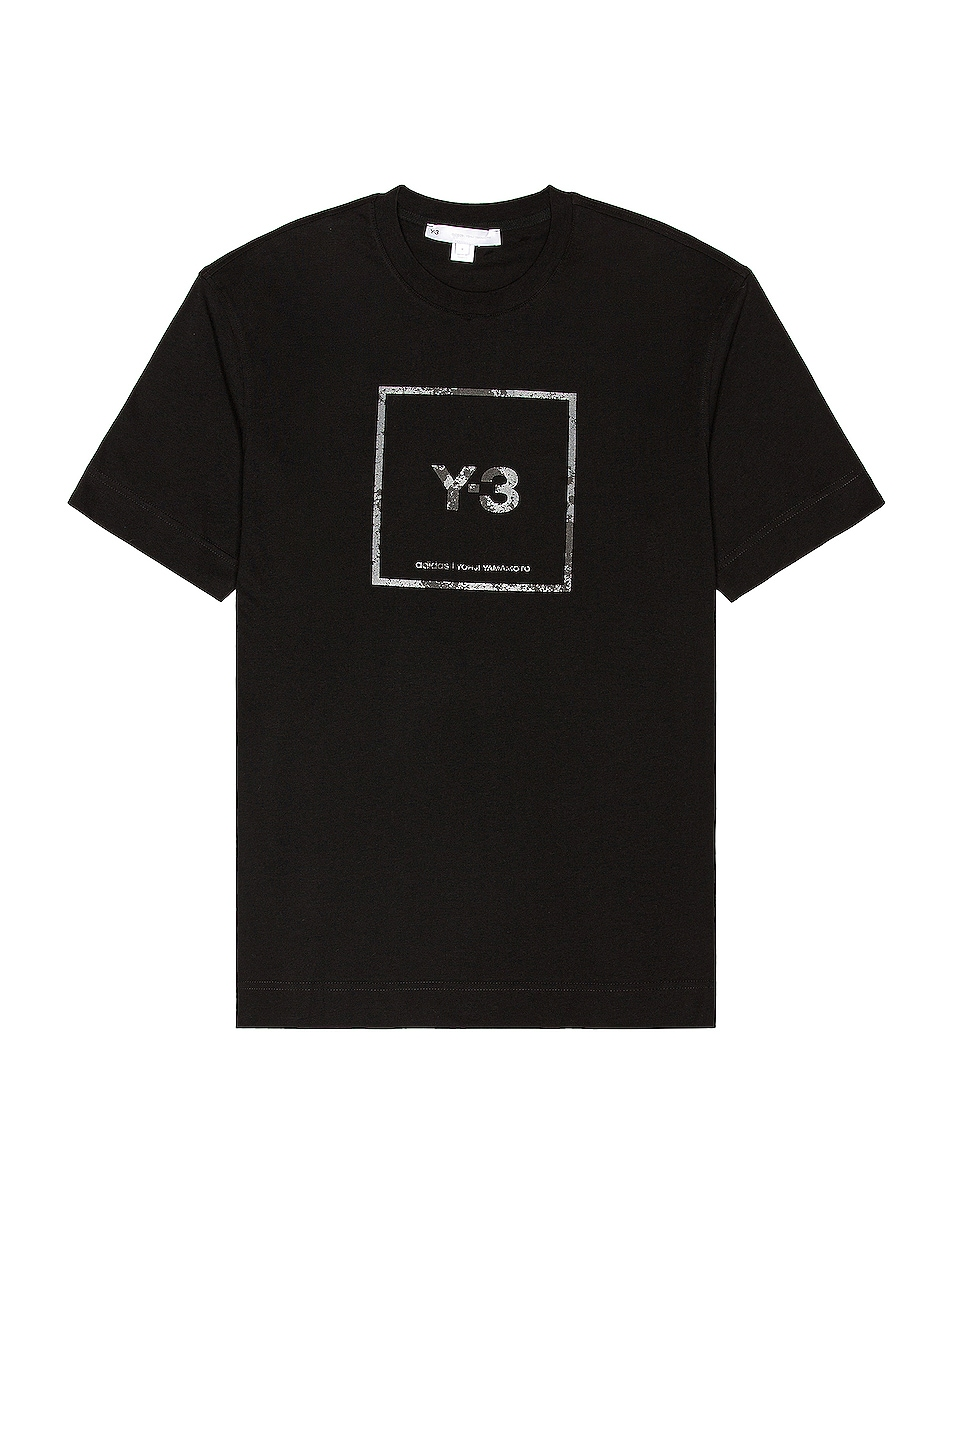 Image 1 of Y-3 Yohji Yamamoto U Square Label Graphic Tee in Black